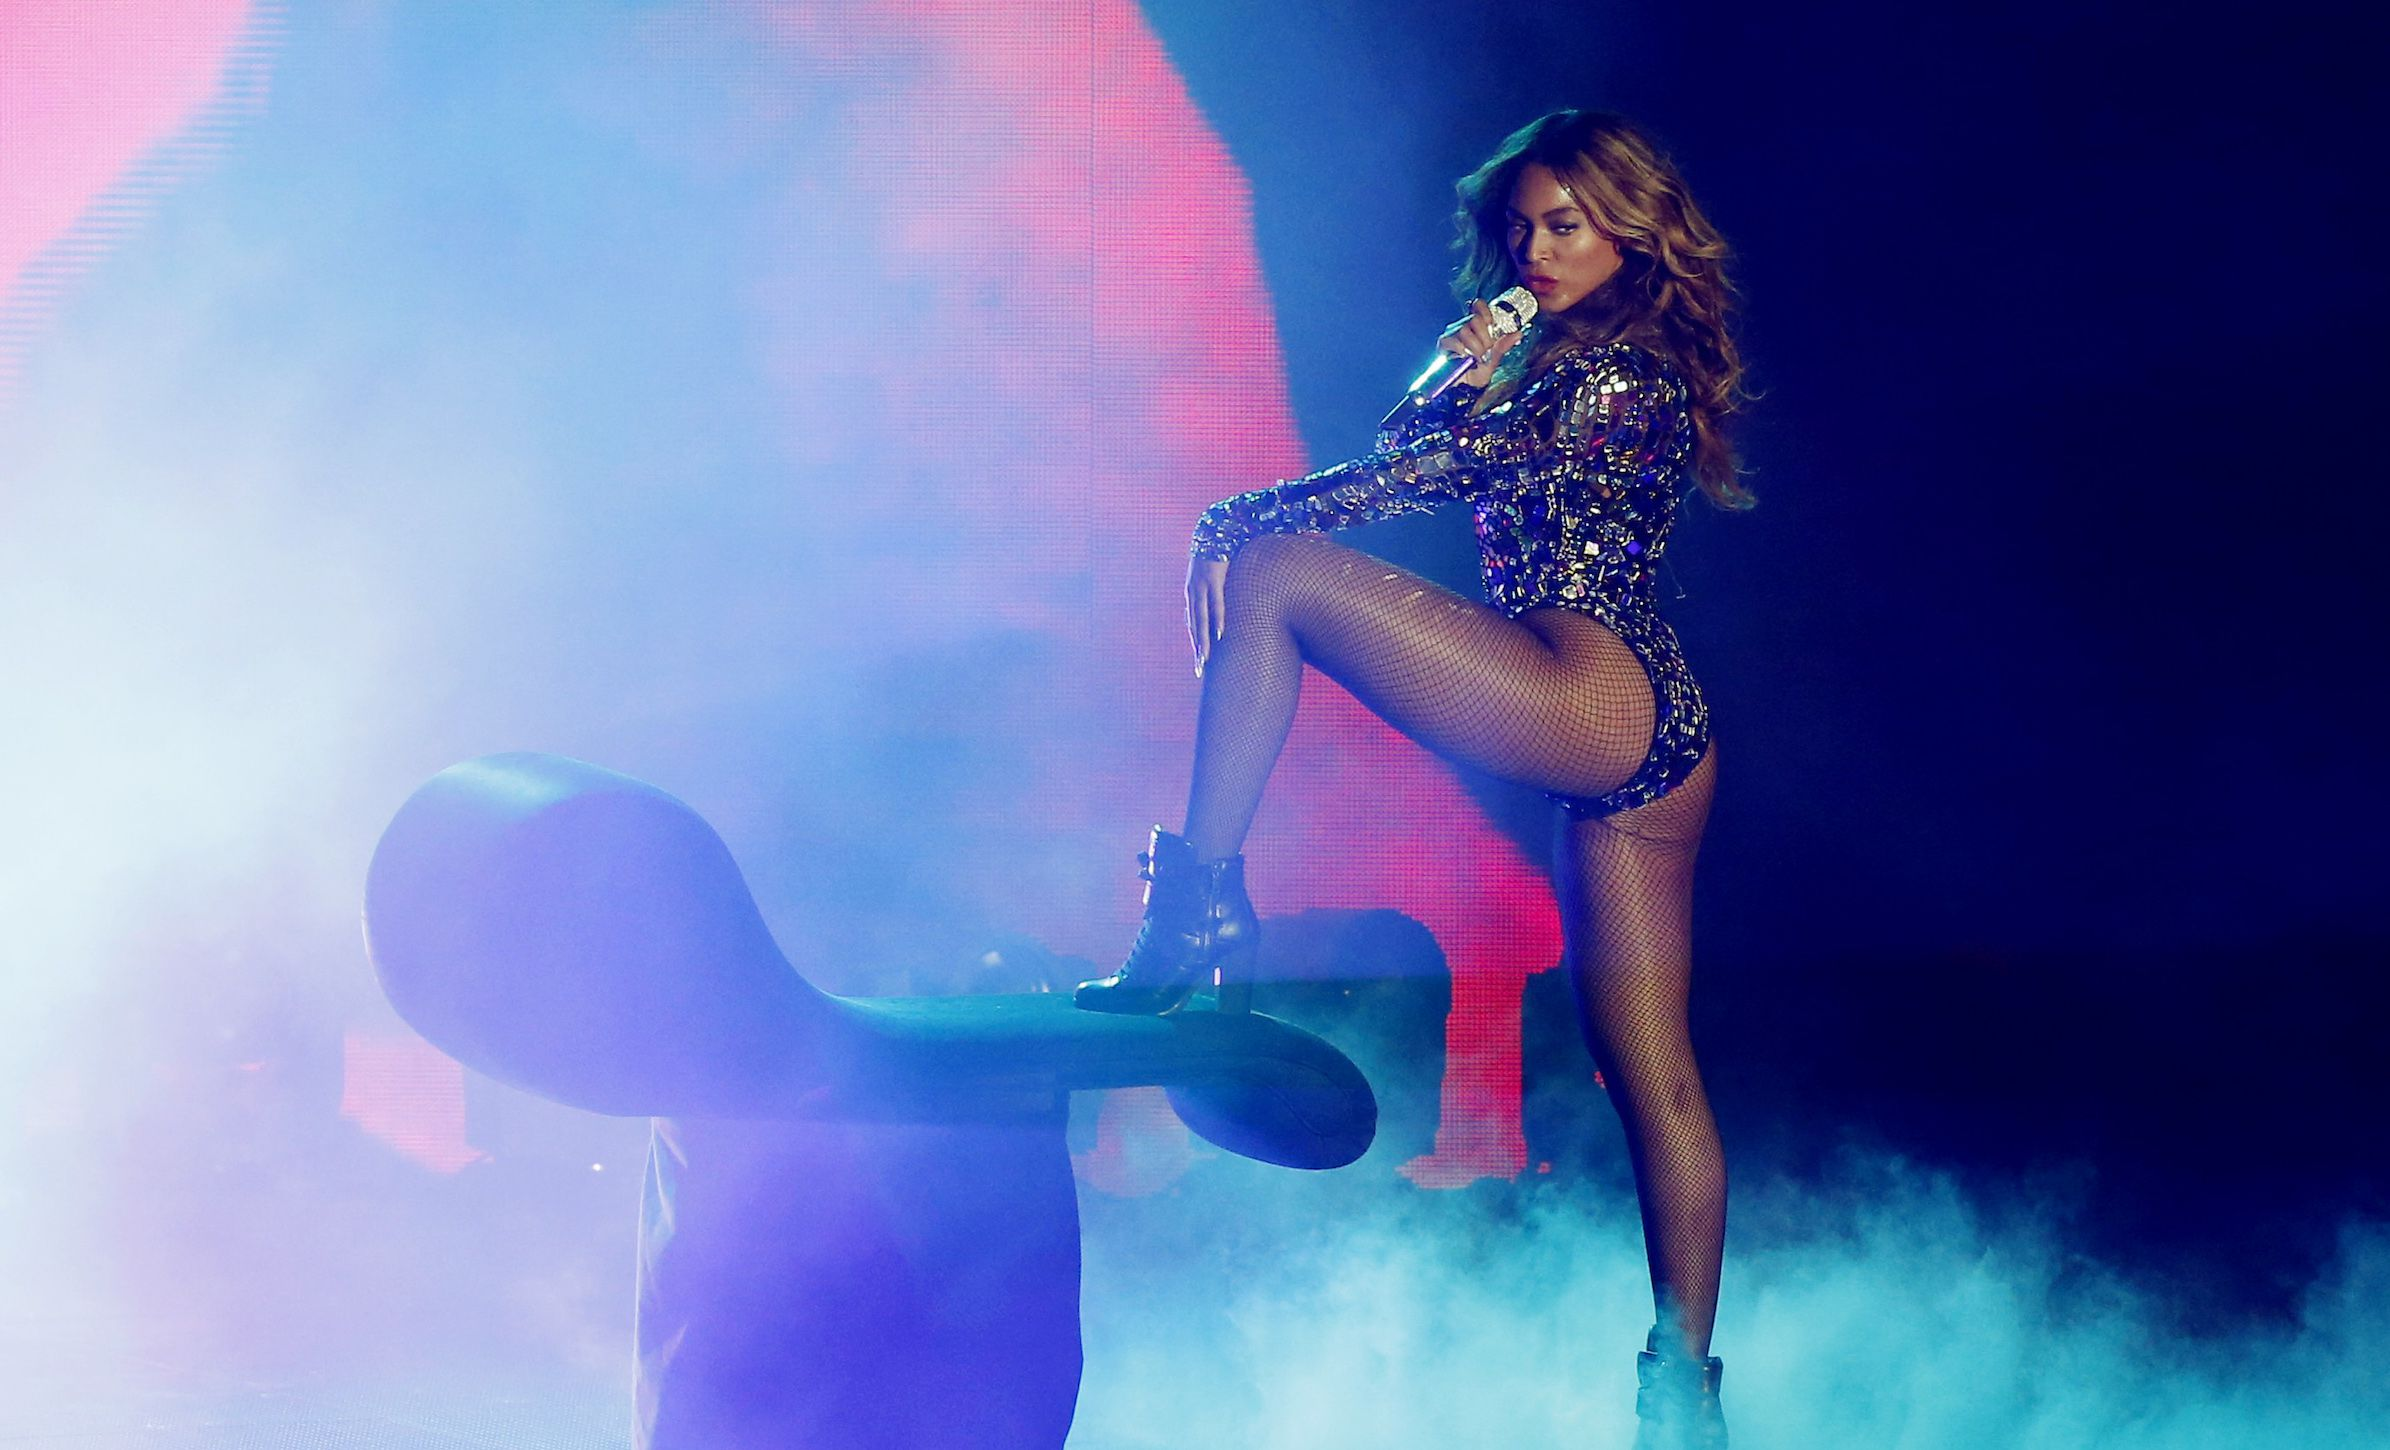 REFILING - CORRECTING PHOTOGRAPHERS NAME IN CAPTION - Beyonce performs a medley of songs during the 2014 MTV Video Music Awards in Inglewood, California August 24, 2014.   REUTERS/Mario Anzuoni (UNITED STATES  - Tags: ENTERTAINMENT)   - RTR43KT9